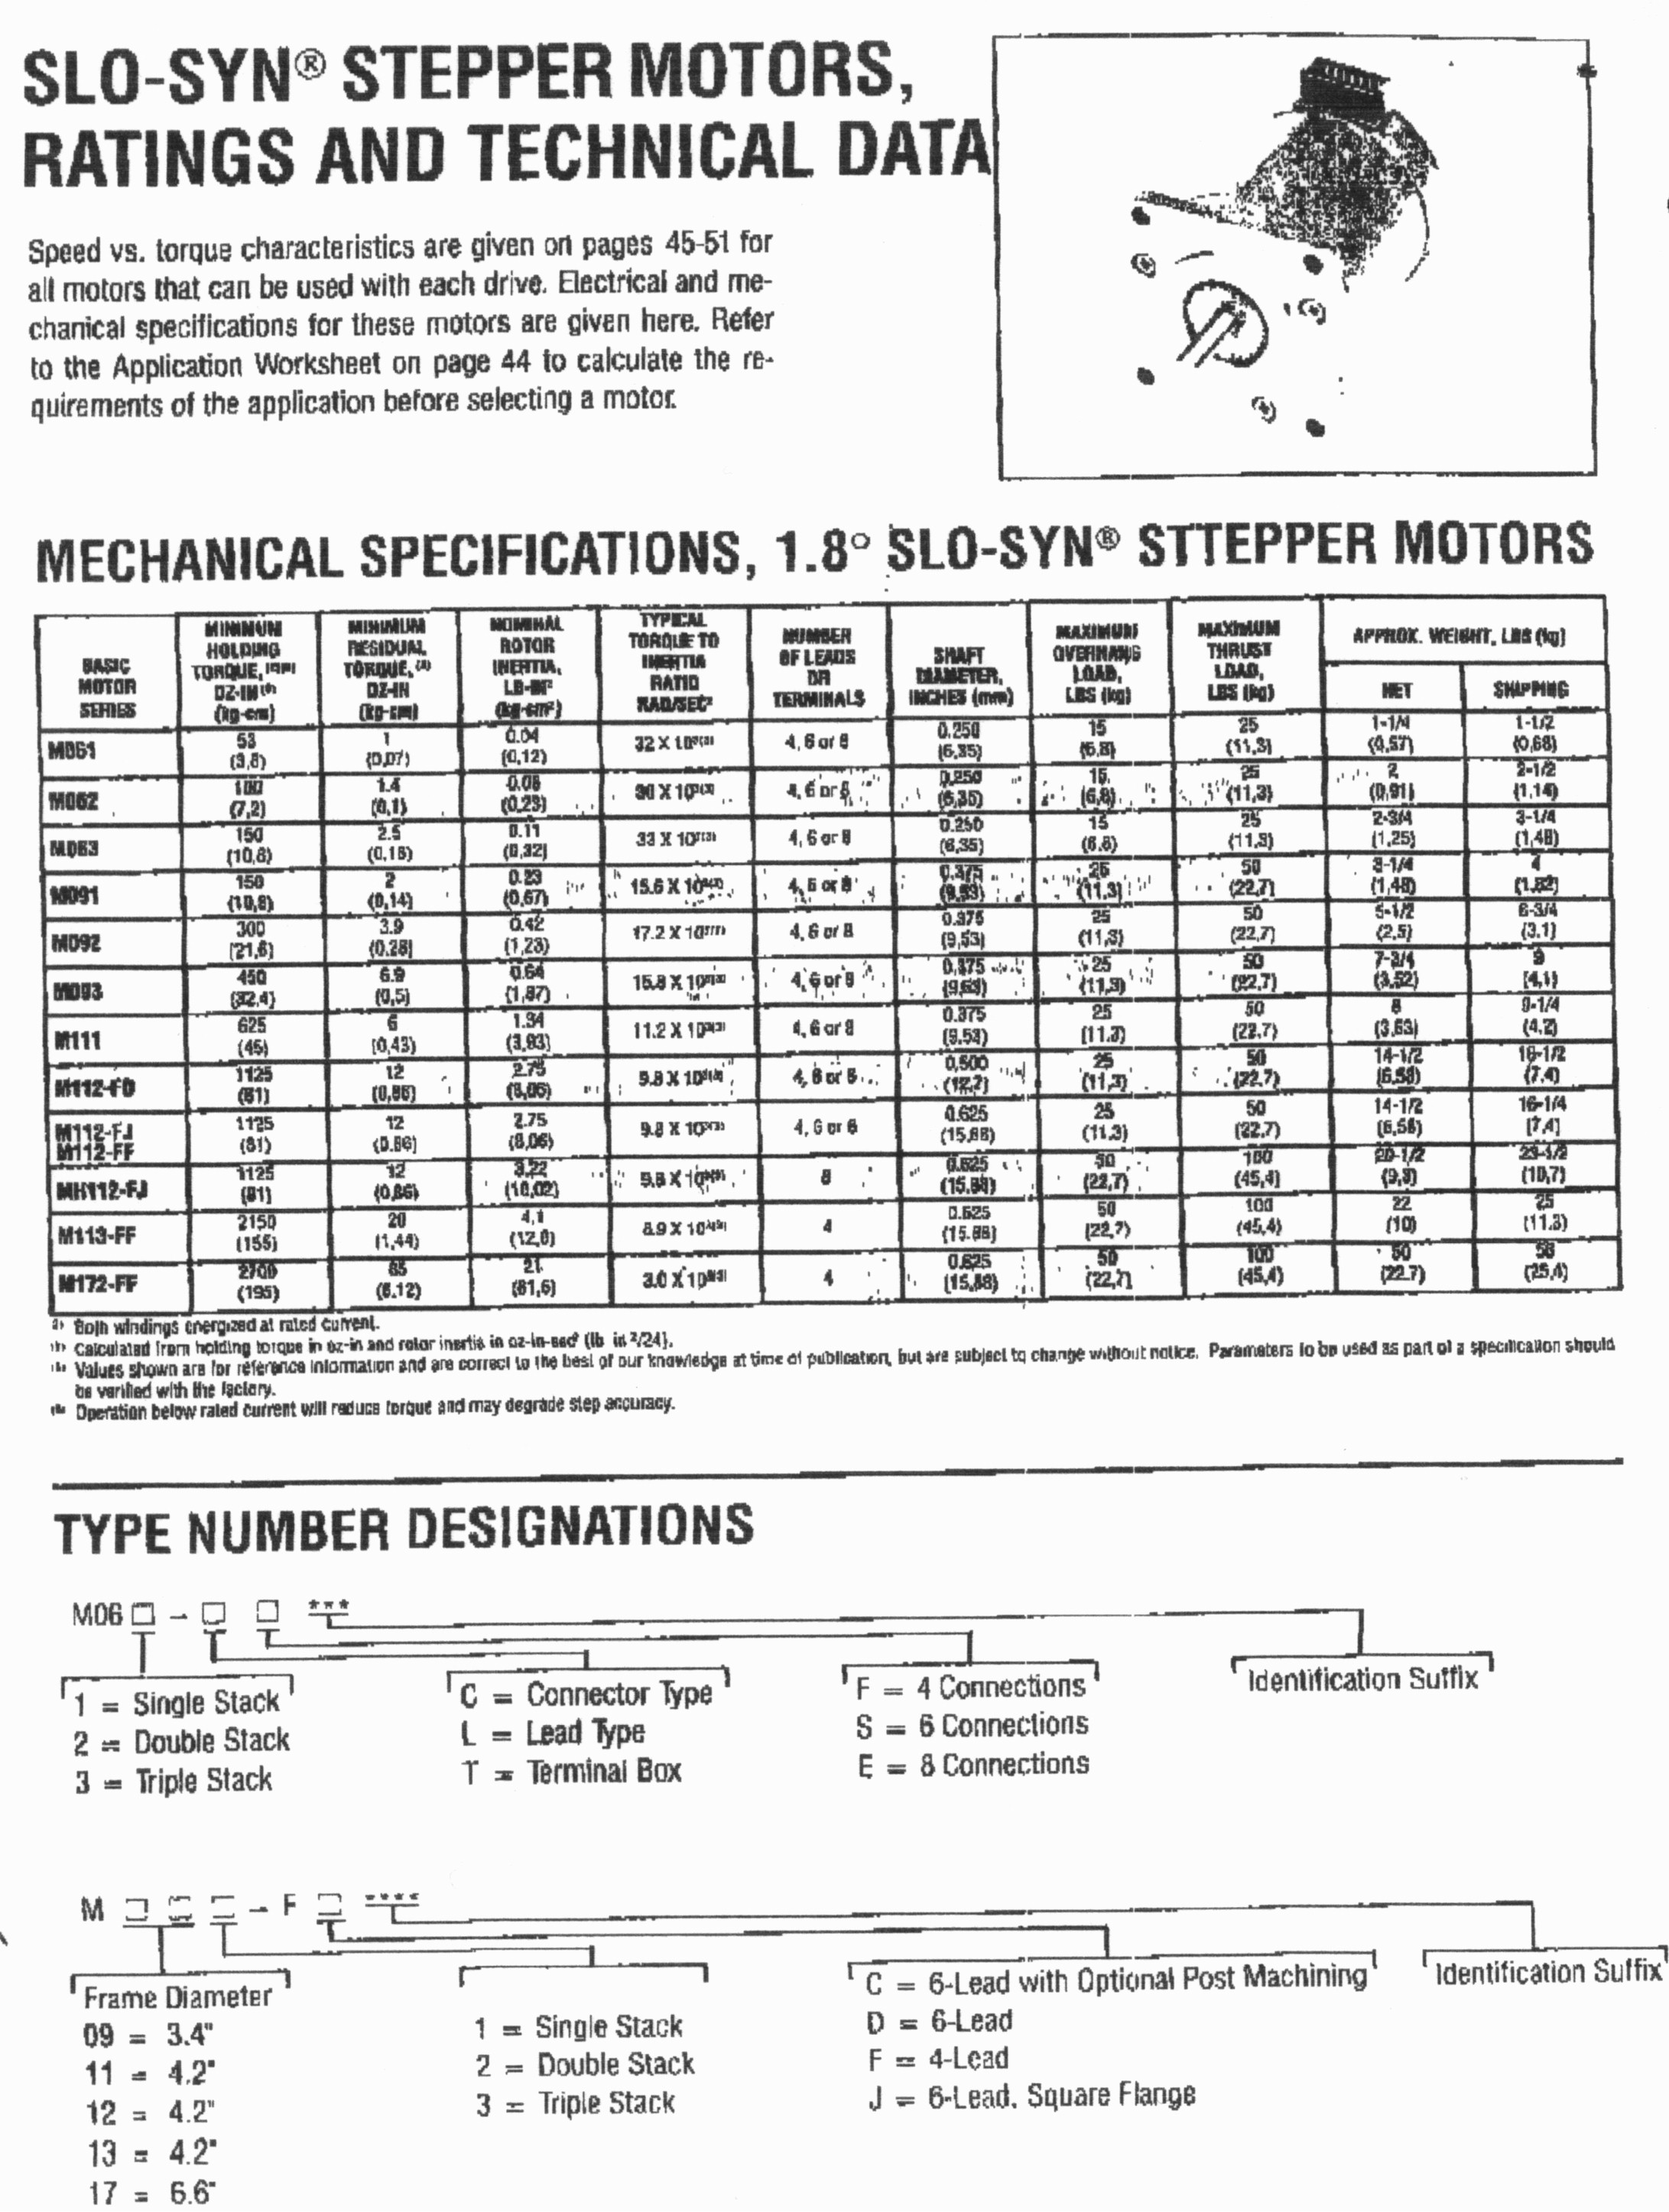 Huntington Feedthrough Specification Sheets Nema 23 Stepper Motor Wiring Diagram Mechanical Specifications Comparison To Previous Models Dimensions Slo Syn Ratings And Technical Data Diagrams